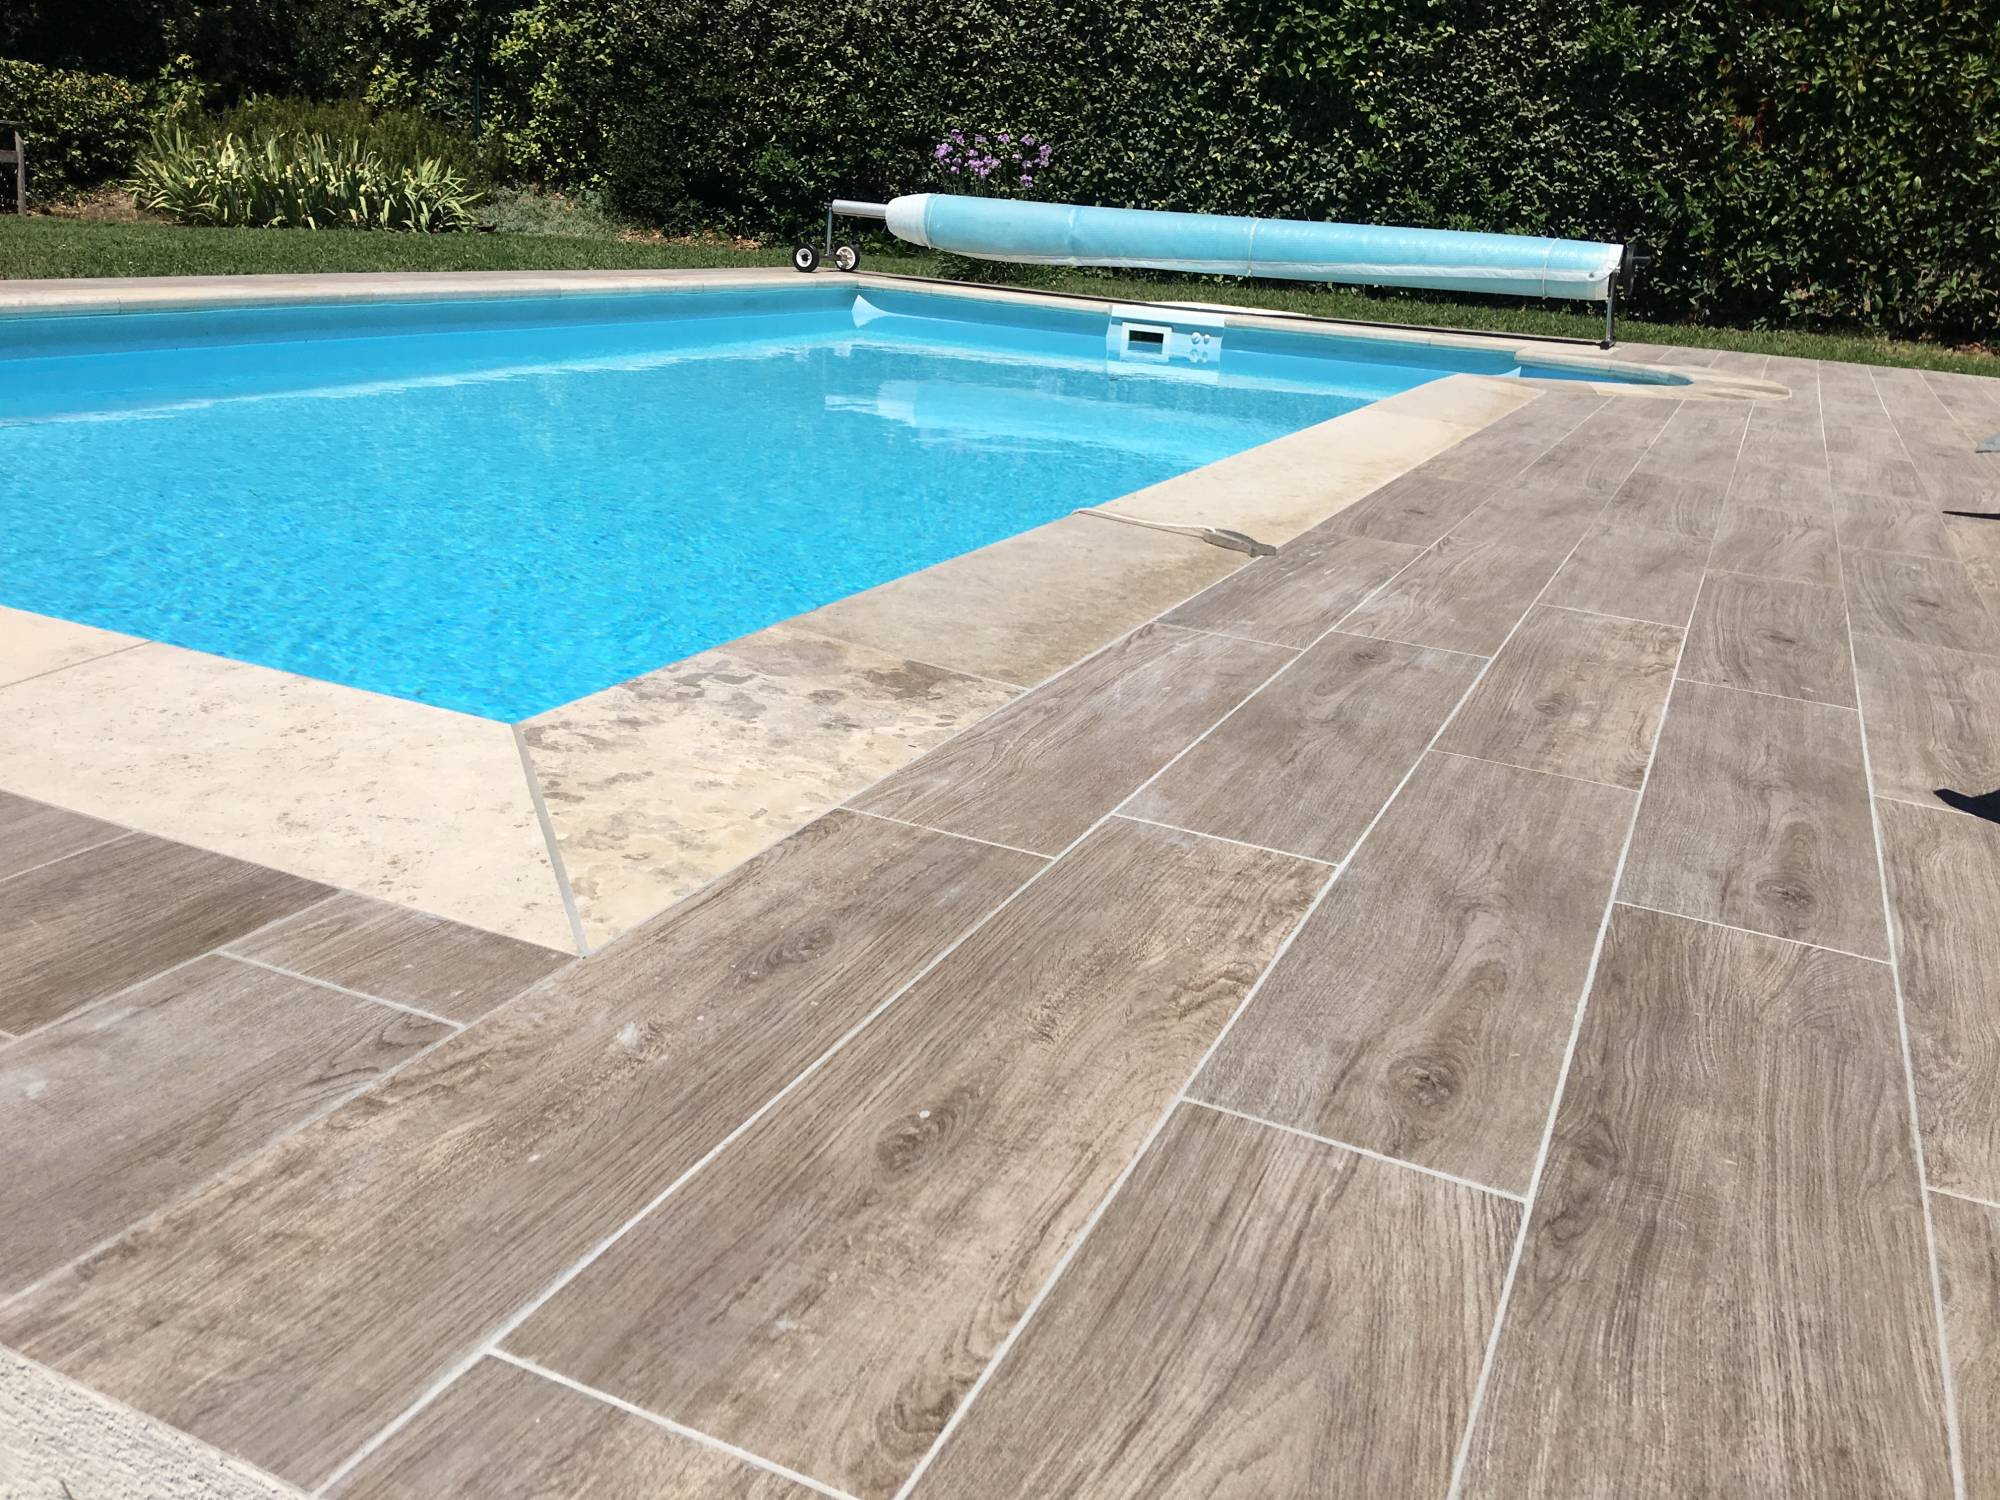 Dallage piscine imitation bois 28 images carrelage for Carrelage de piscine